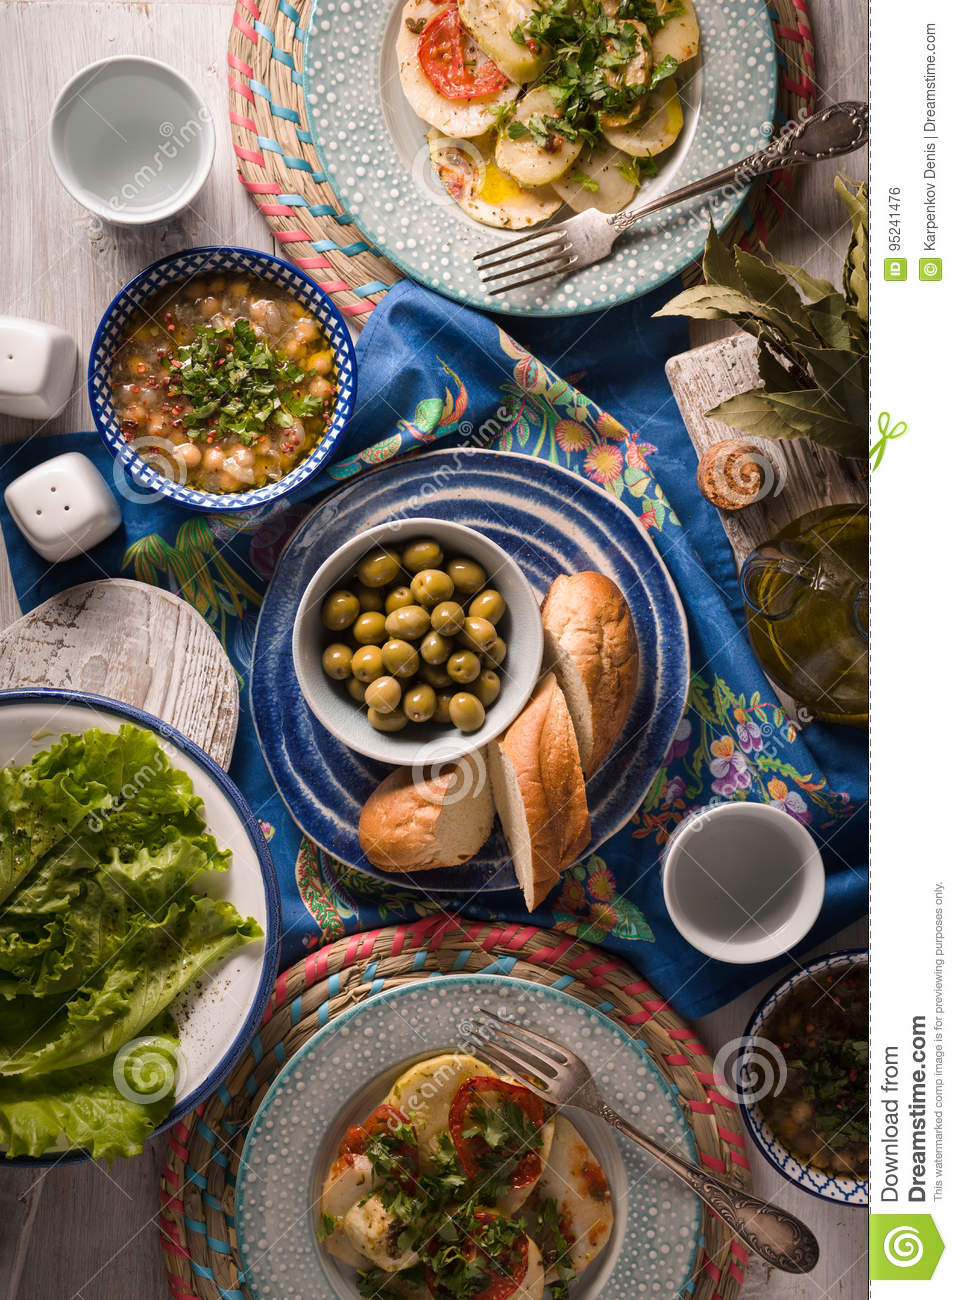 Greek Dinner With Traditional Dishes On The White Table Vertical Stock Photo Image Of Beige Mediterranean 95241476